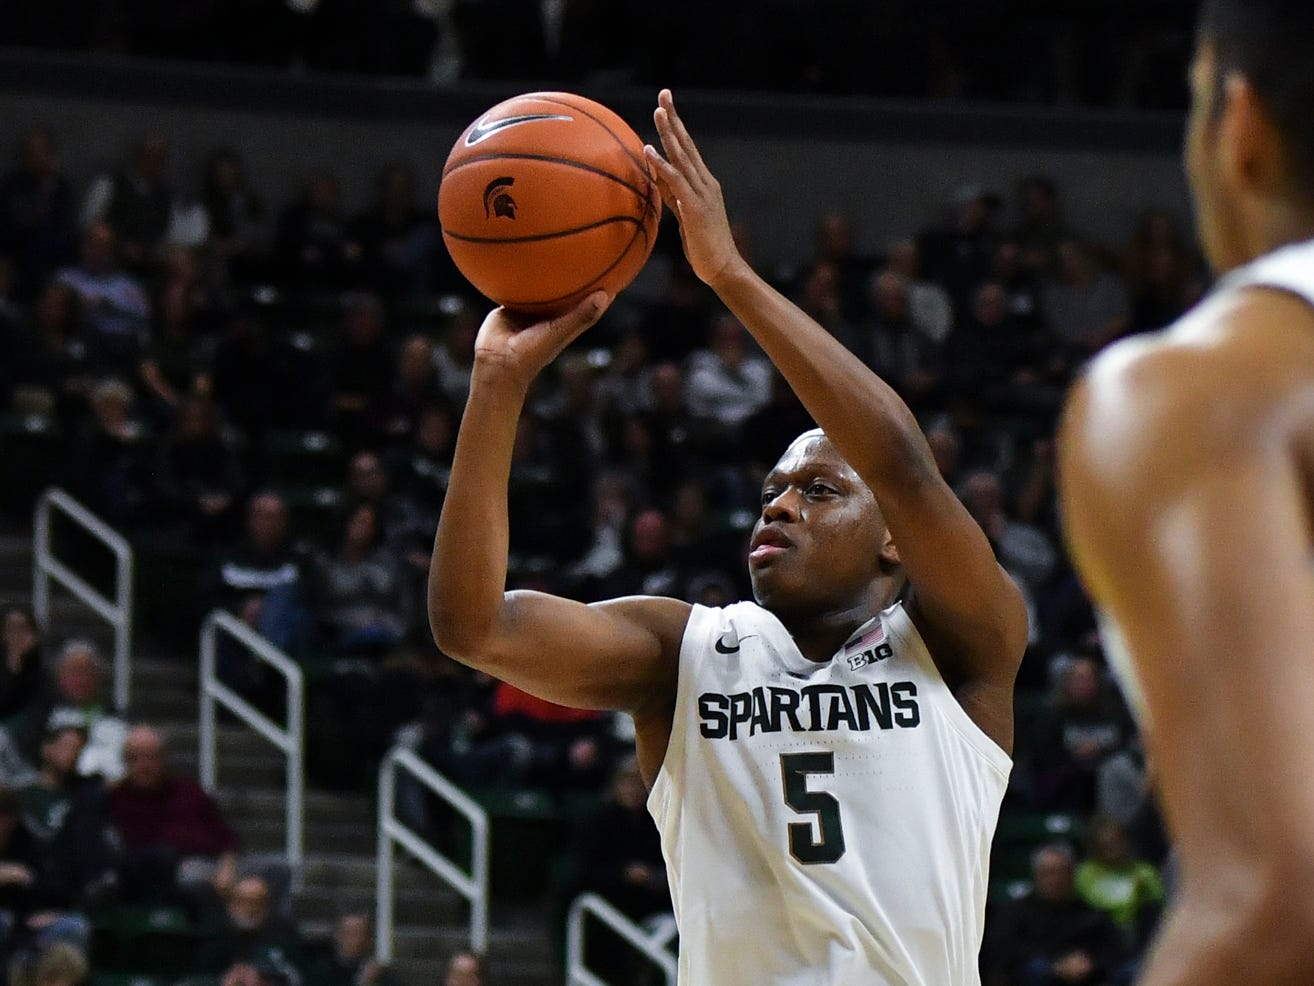 MSU's Cassius Winston shoots from three-point land against Louisiana-Monroe Wednesday, Nov. 14, 2018, at the Breslin Center.  MSU won 80-59.